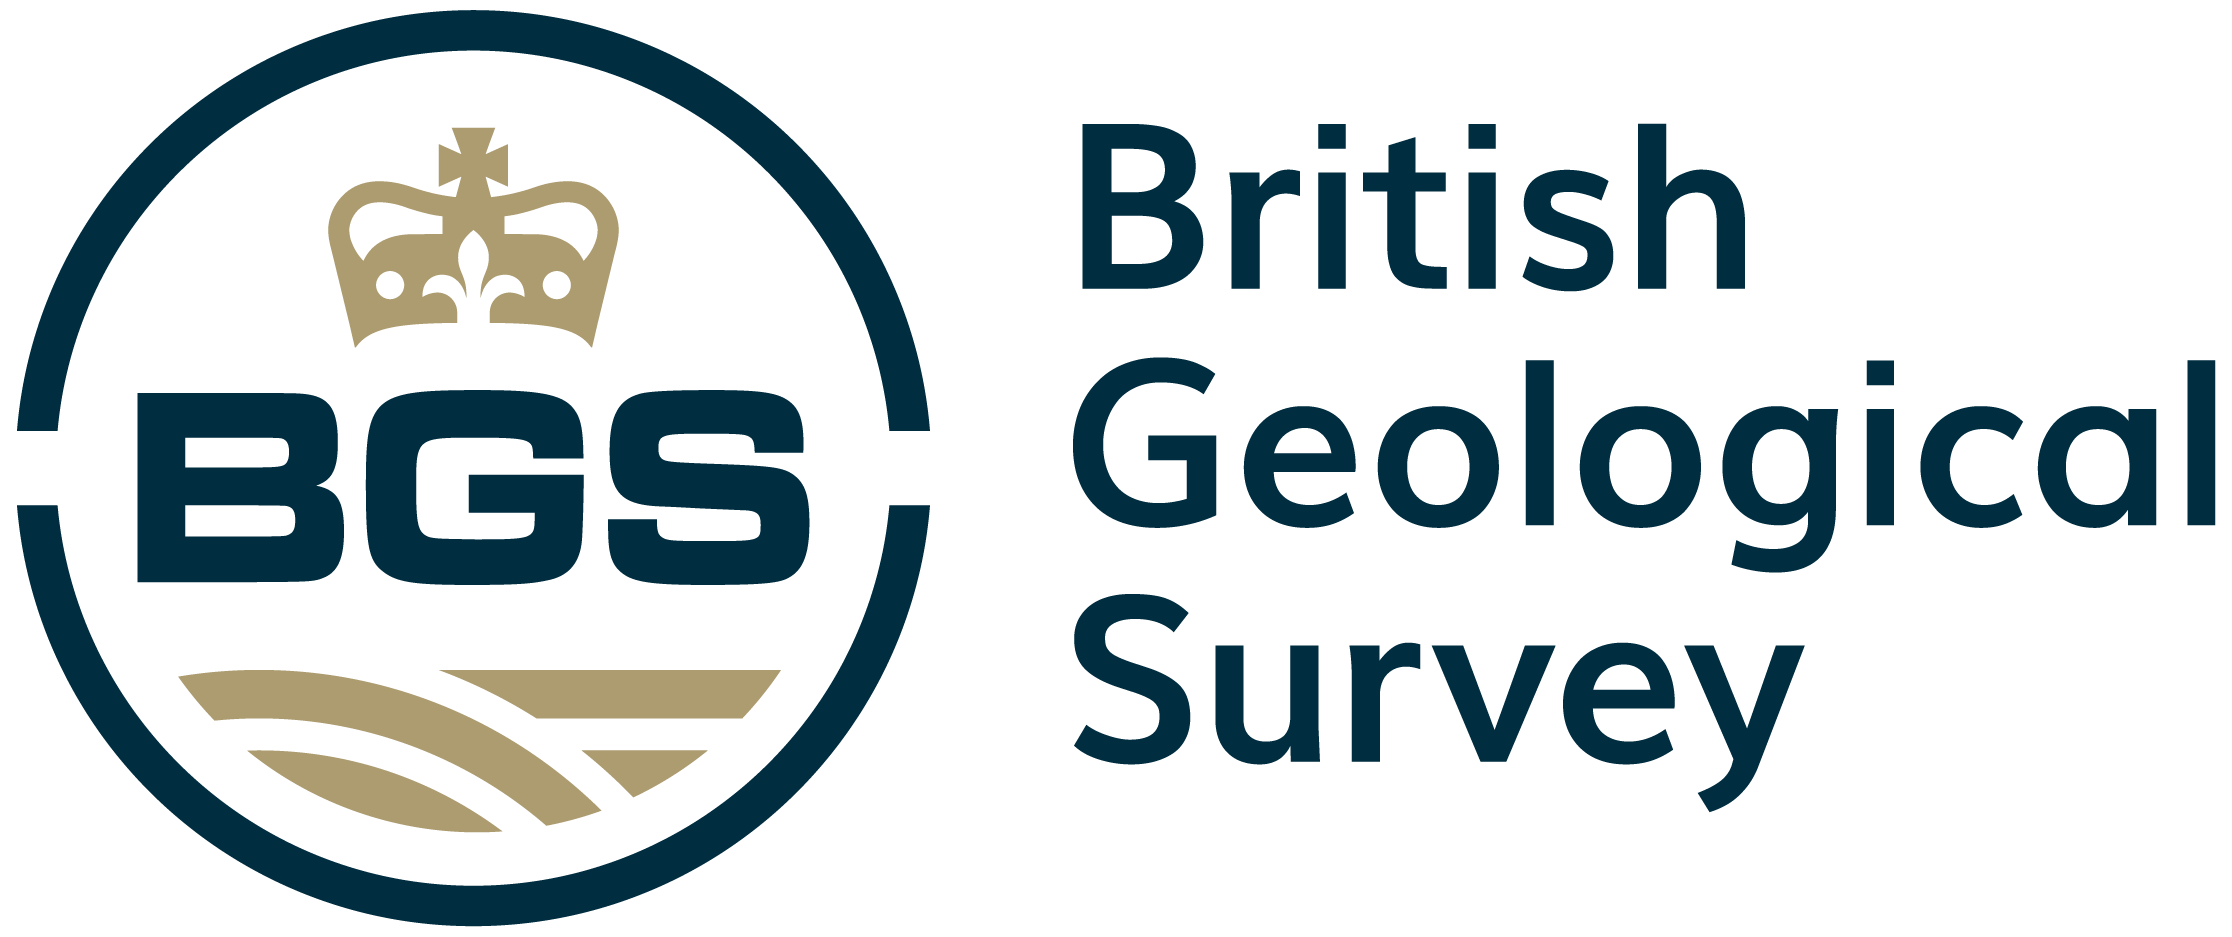 British Geographical Survey